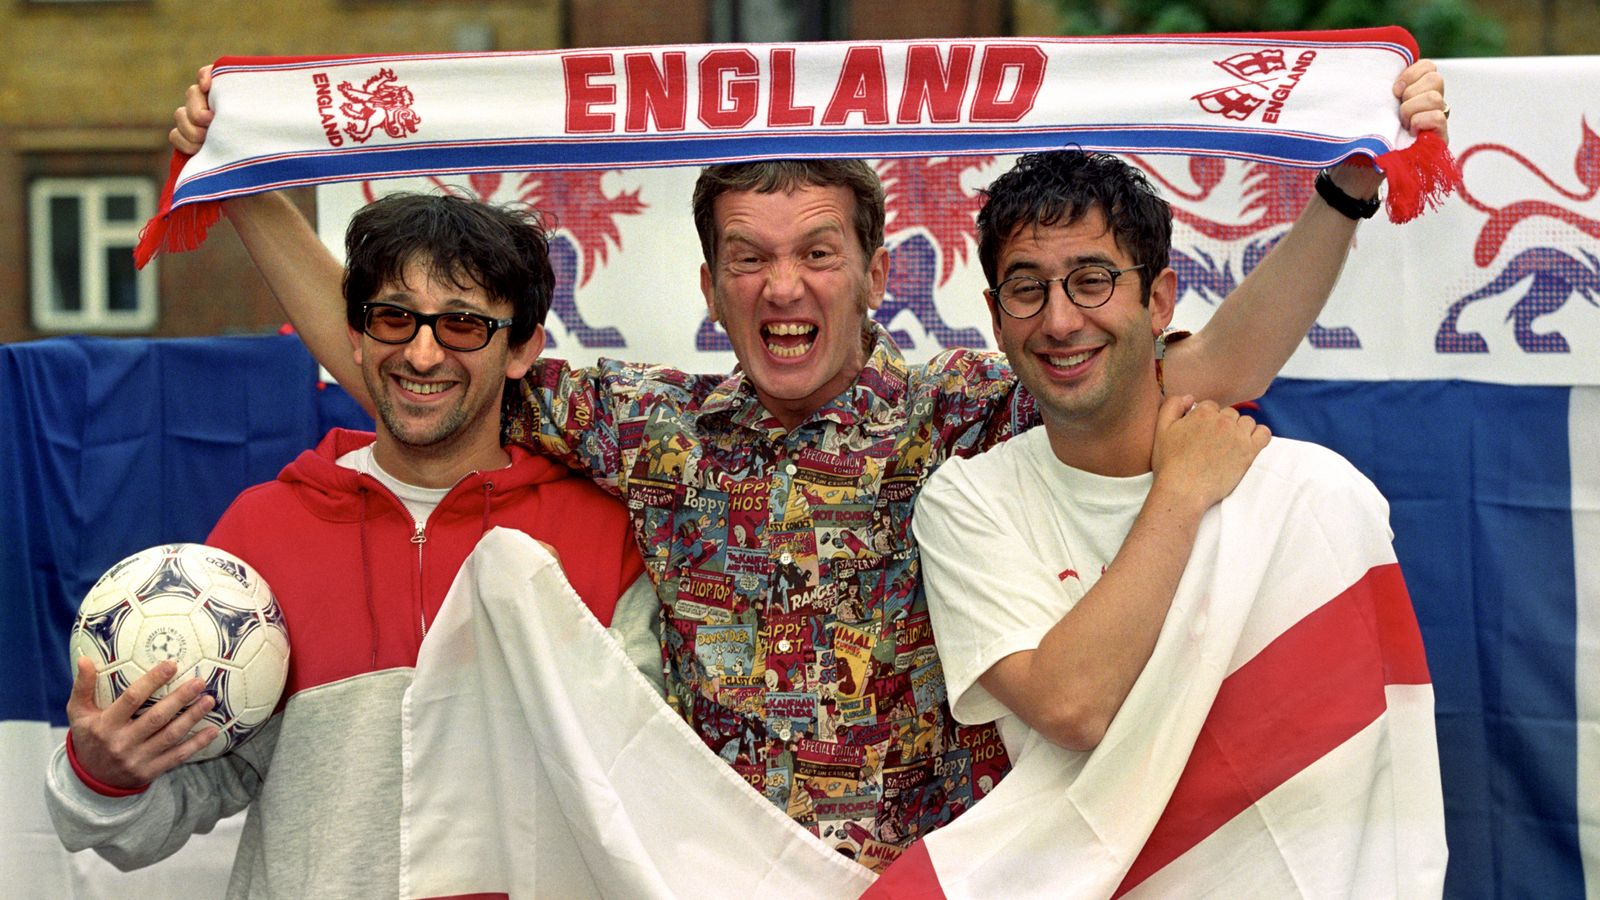 Football's Coming Home: Writer of iconic Three Lions football tune reflects on song being embraced by young fans 25 years on